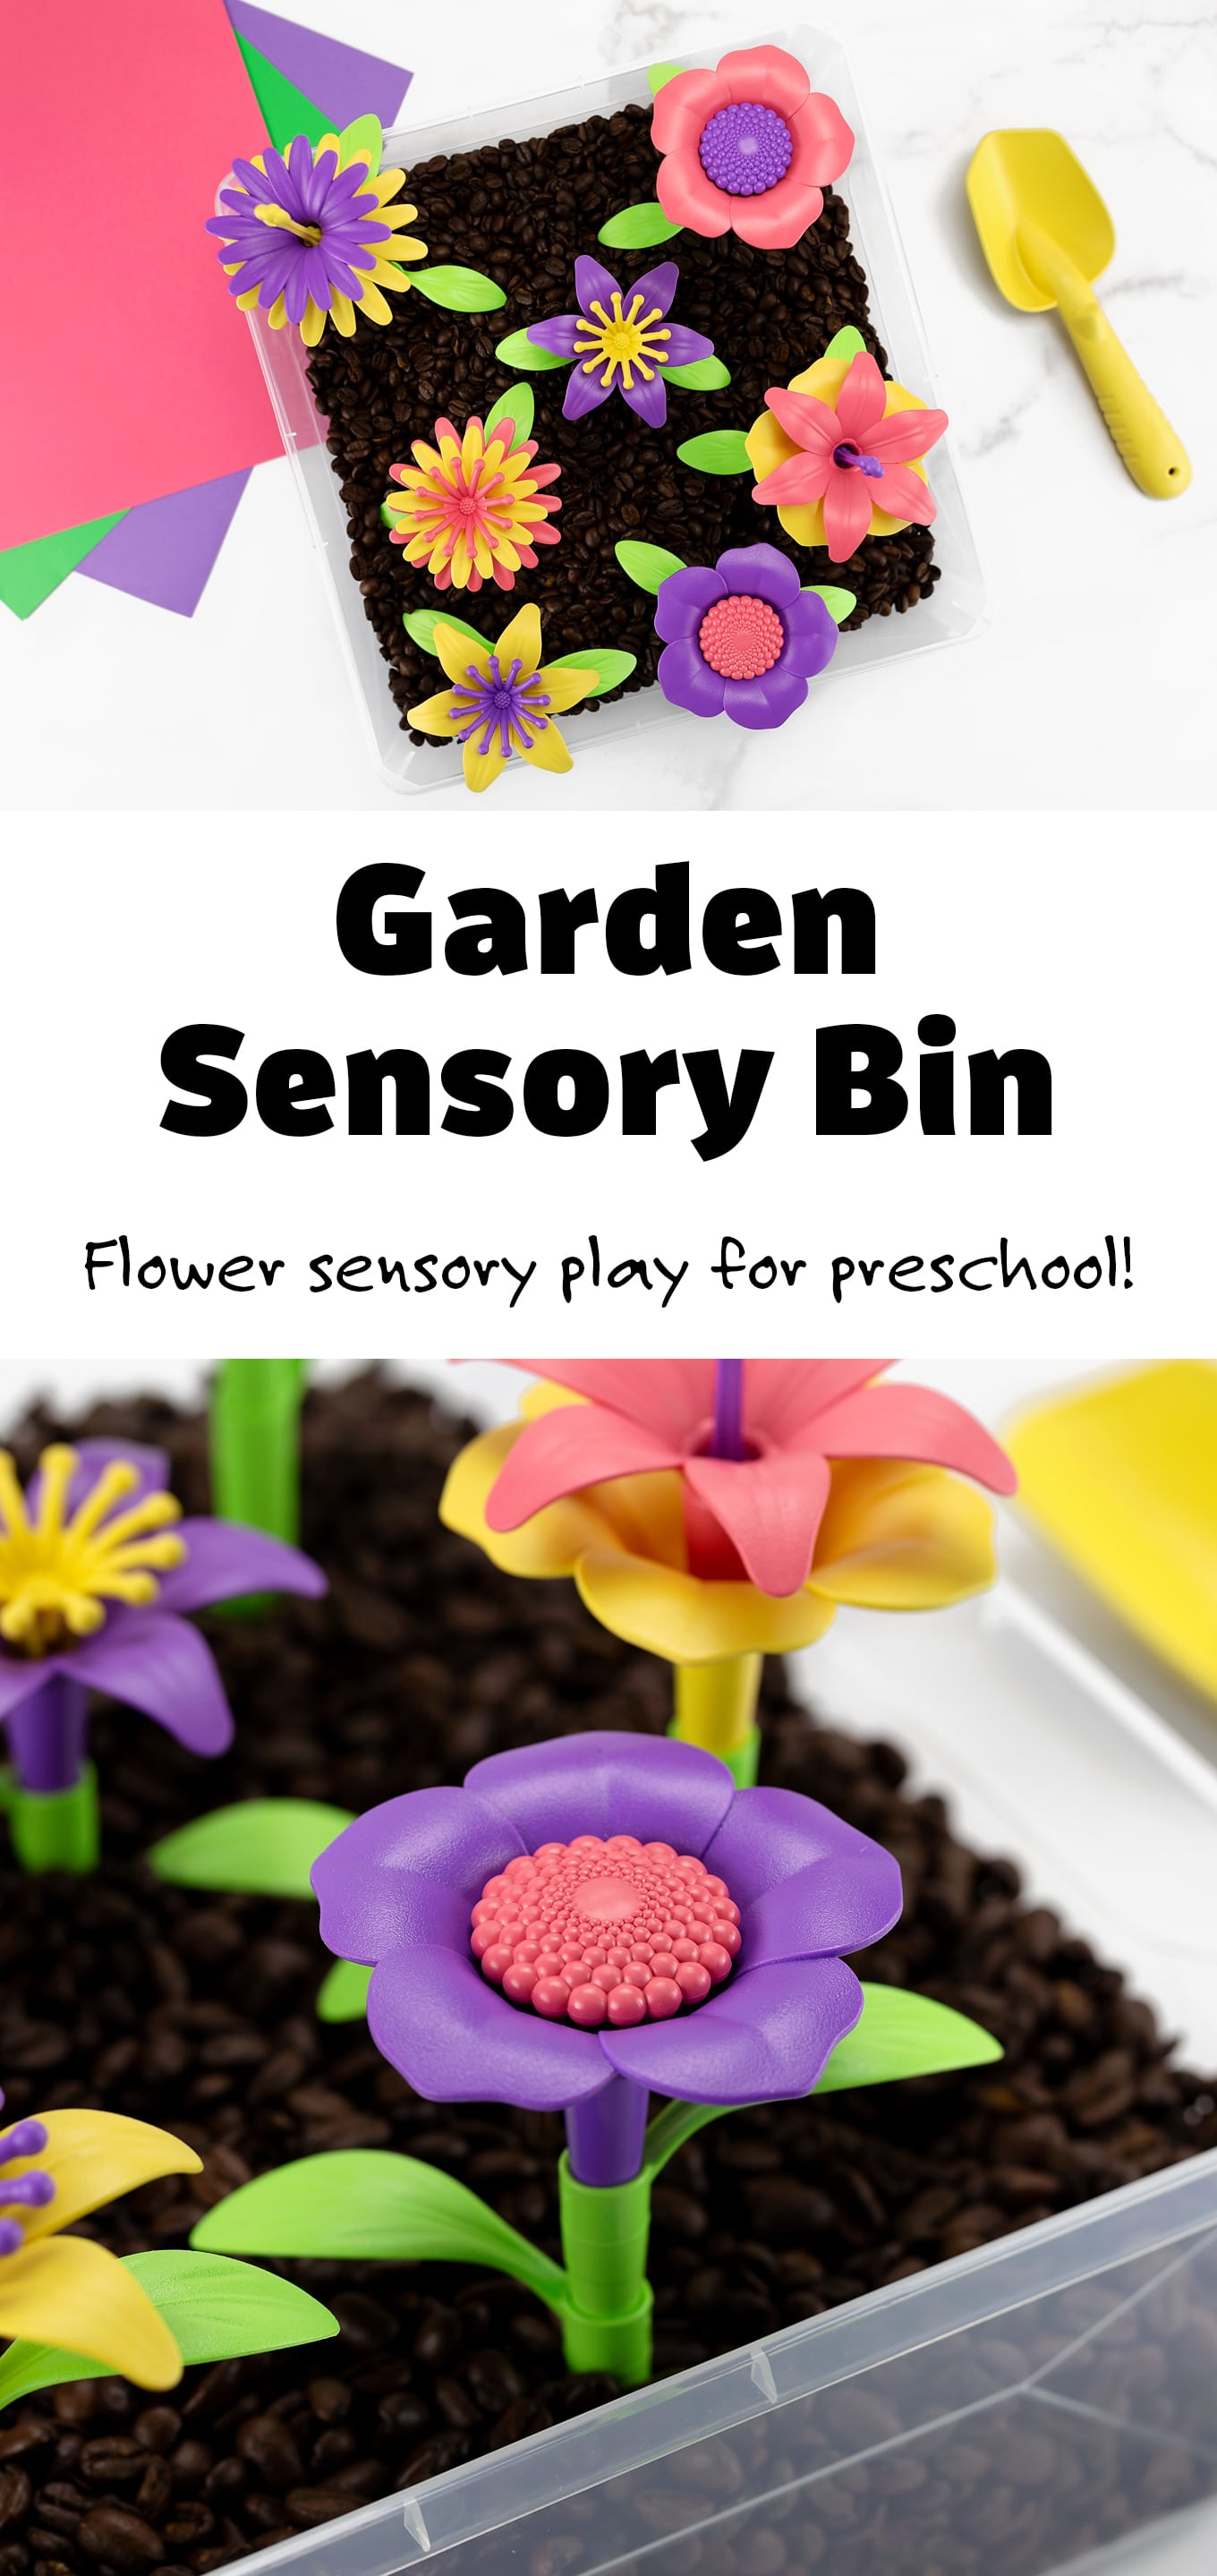 Let's dig into a garden sensory bin for some hands-on play, learning, and fun! This flower sensory bin is a great introduction for toddlers and preschoolers to explore planting and tending to a garden, all while learning about flowers. Turn it into a fun summer unit with some garden picture books, flower crafts, and nature walks.#gardensensorybin #flowersensorybin #kids #sensorybin via @firefliesandmudpies